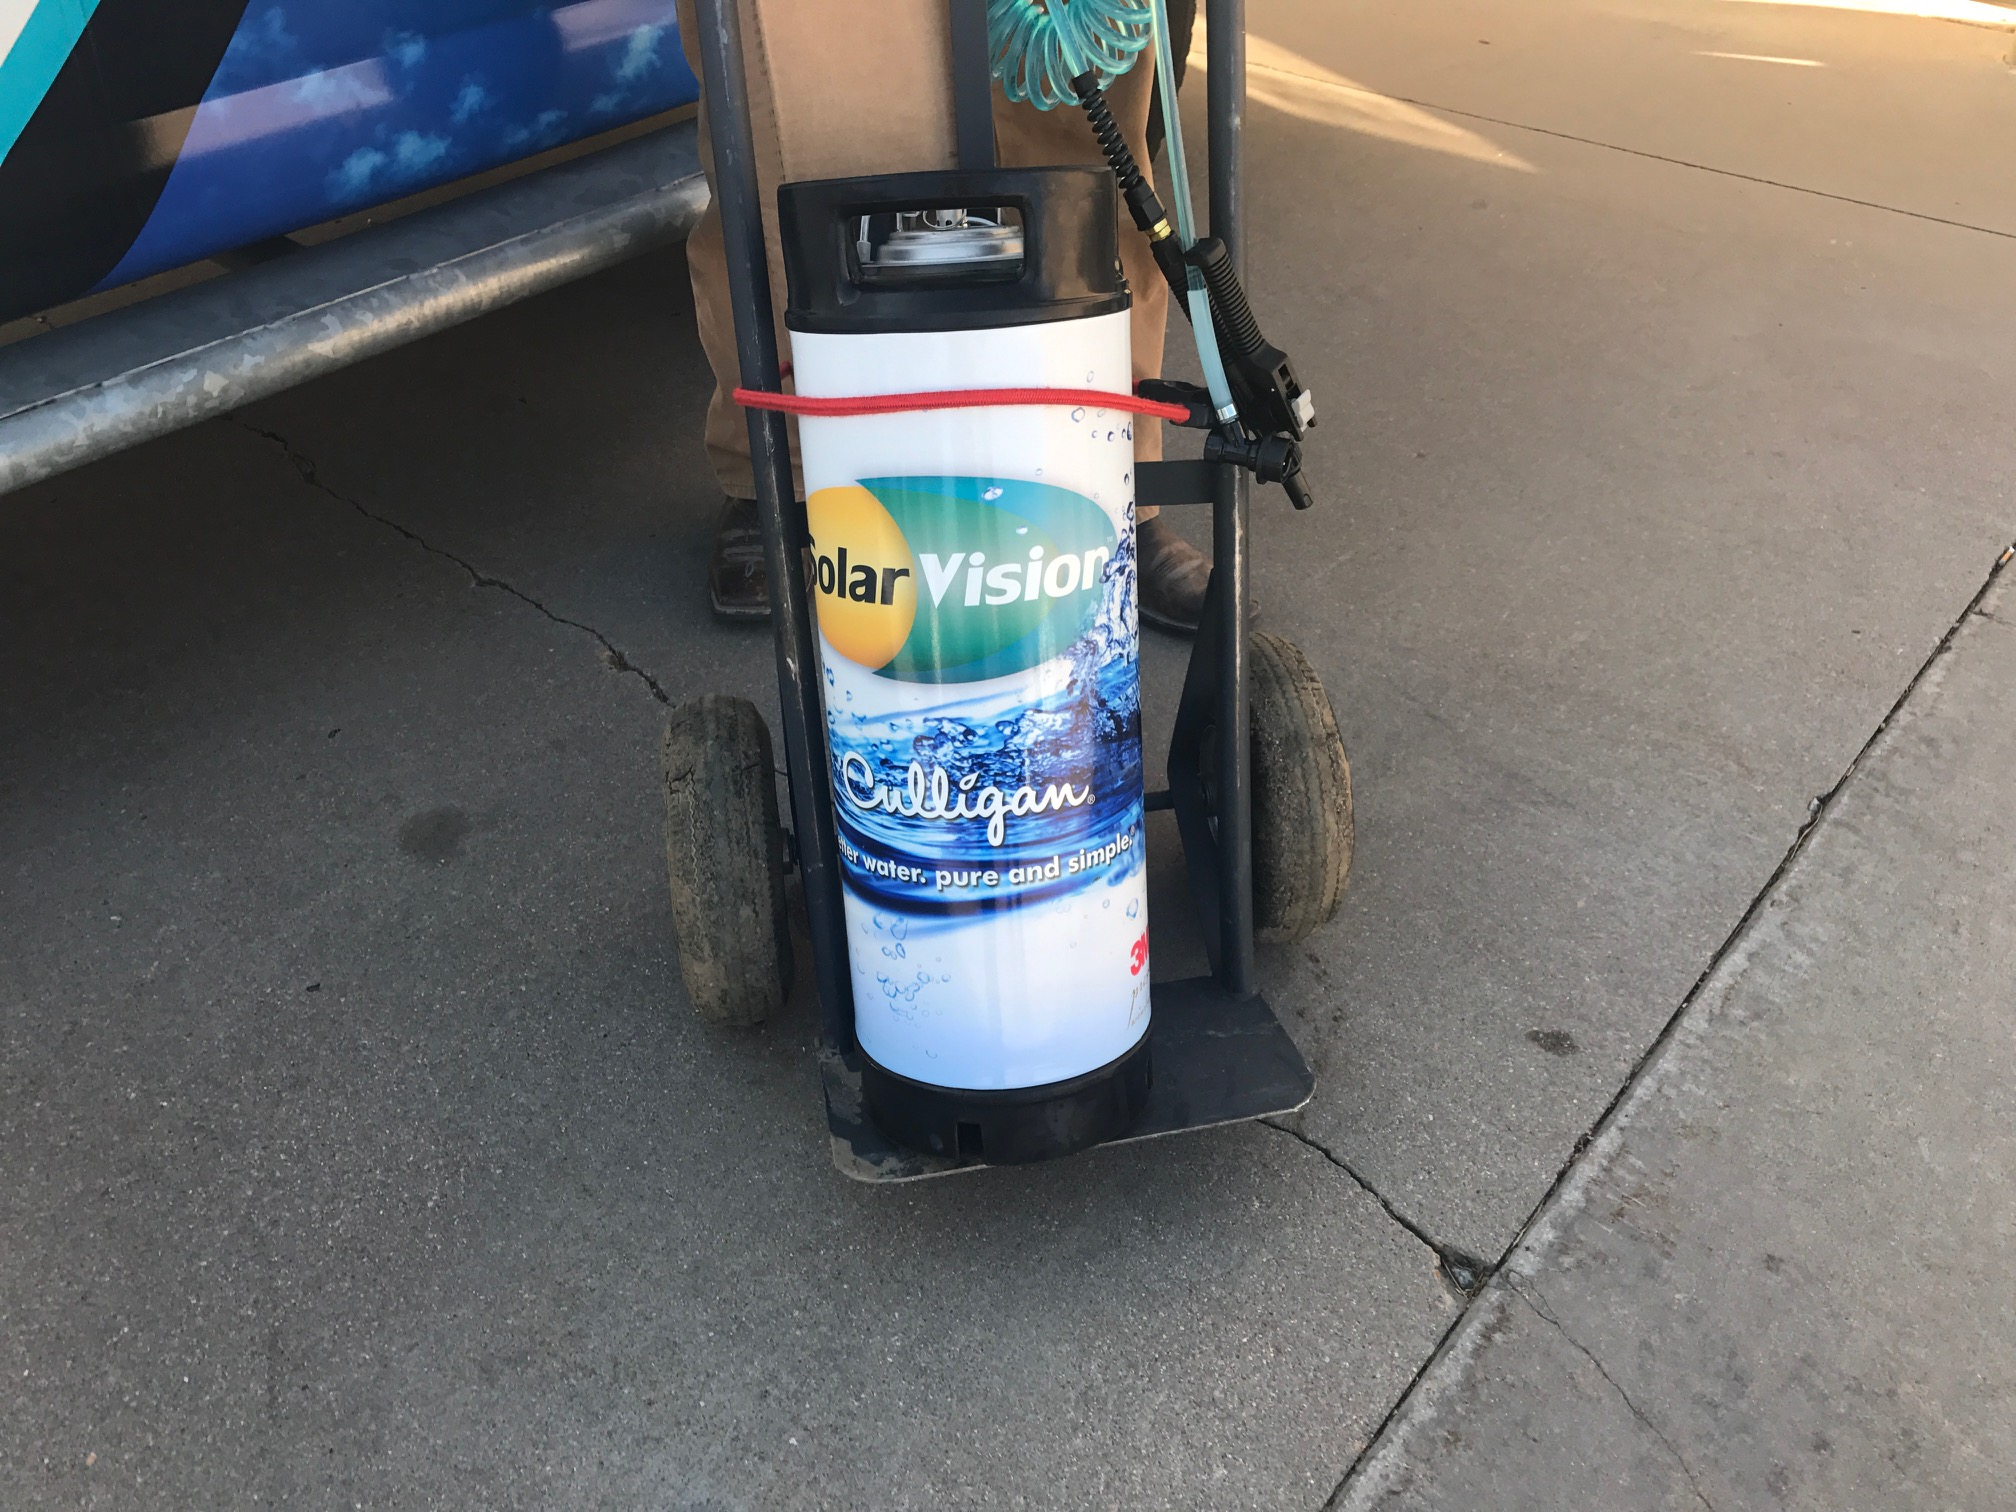 This little co-branded contraption is a pressurized water tank used for installing window film.